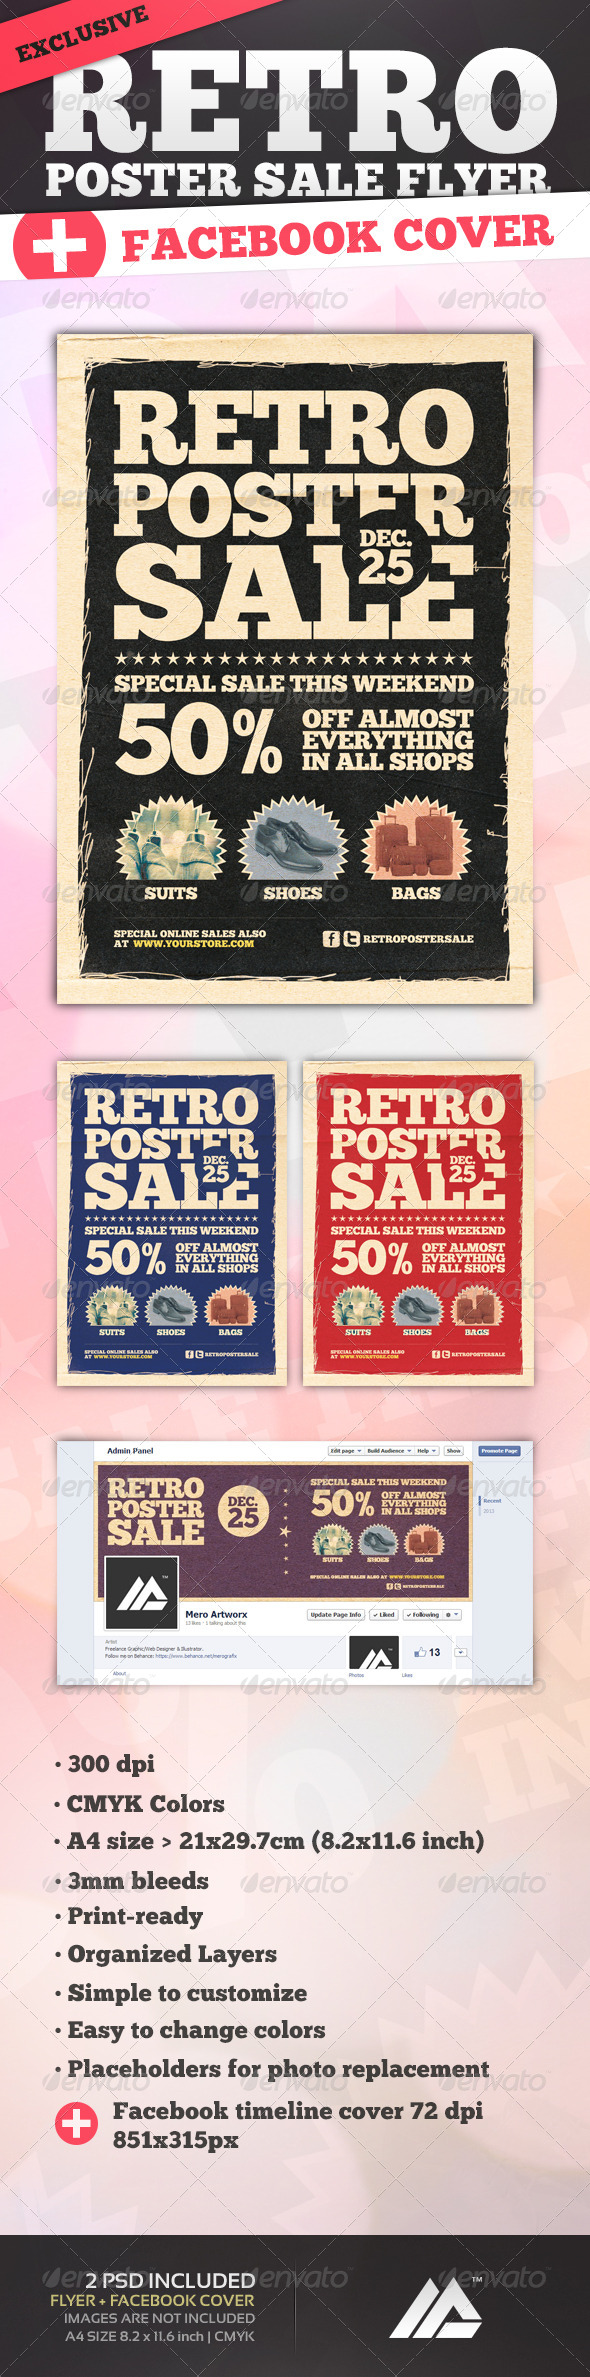 Retro Poster Sale Flyer PSD - Flyers Print Templates